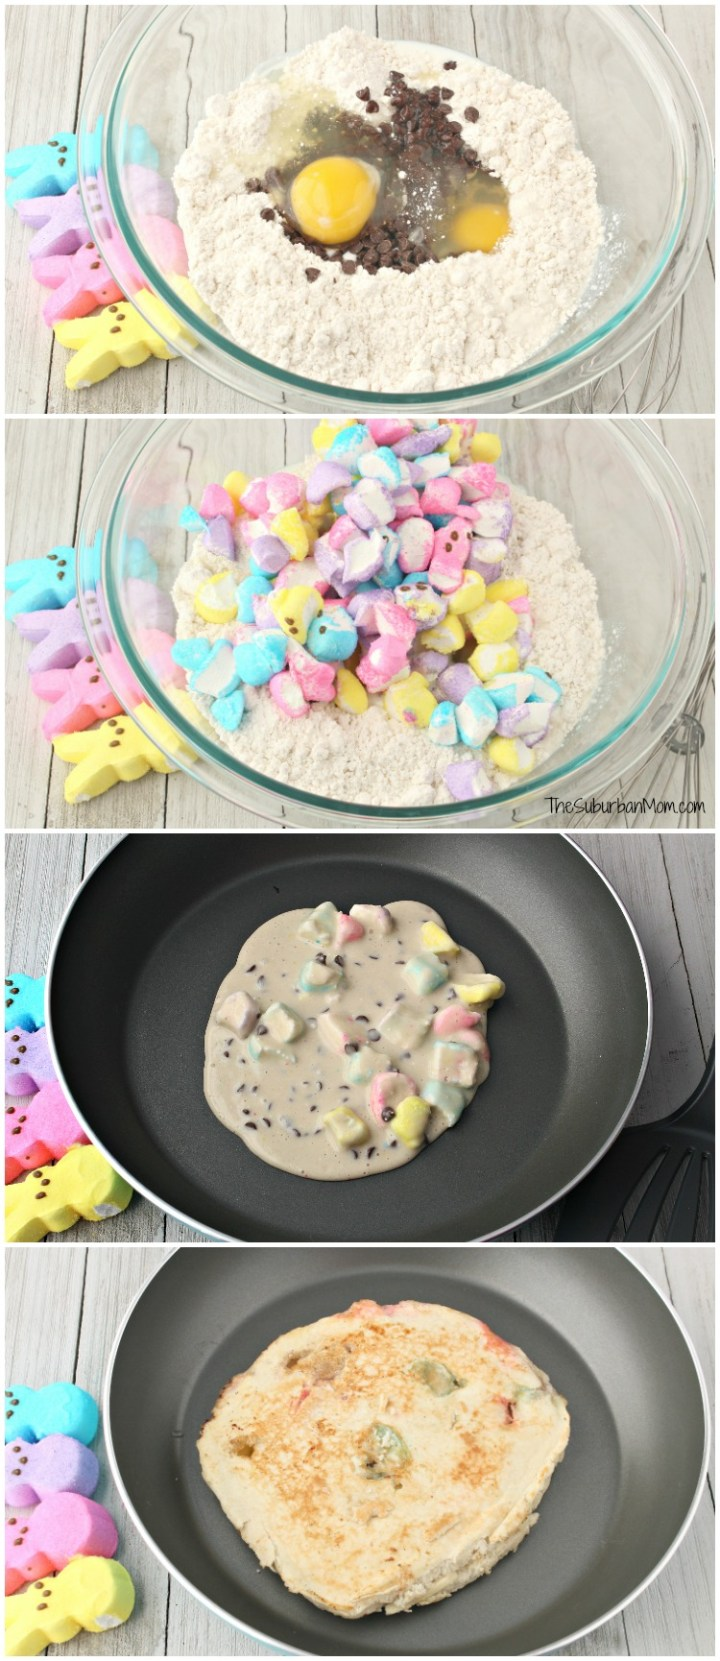 How To Make Peeps Pancakes